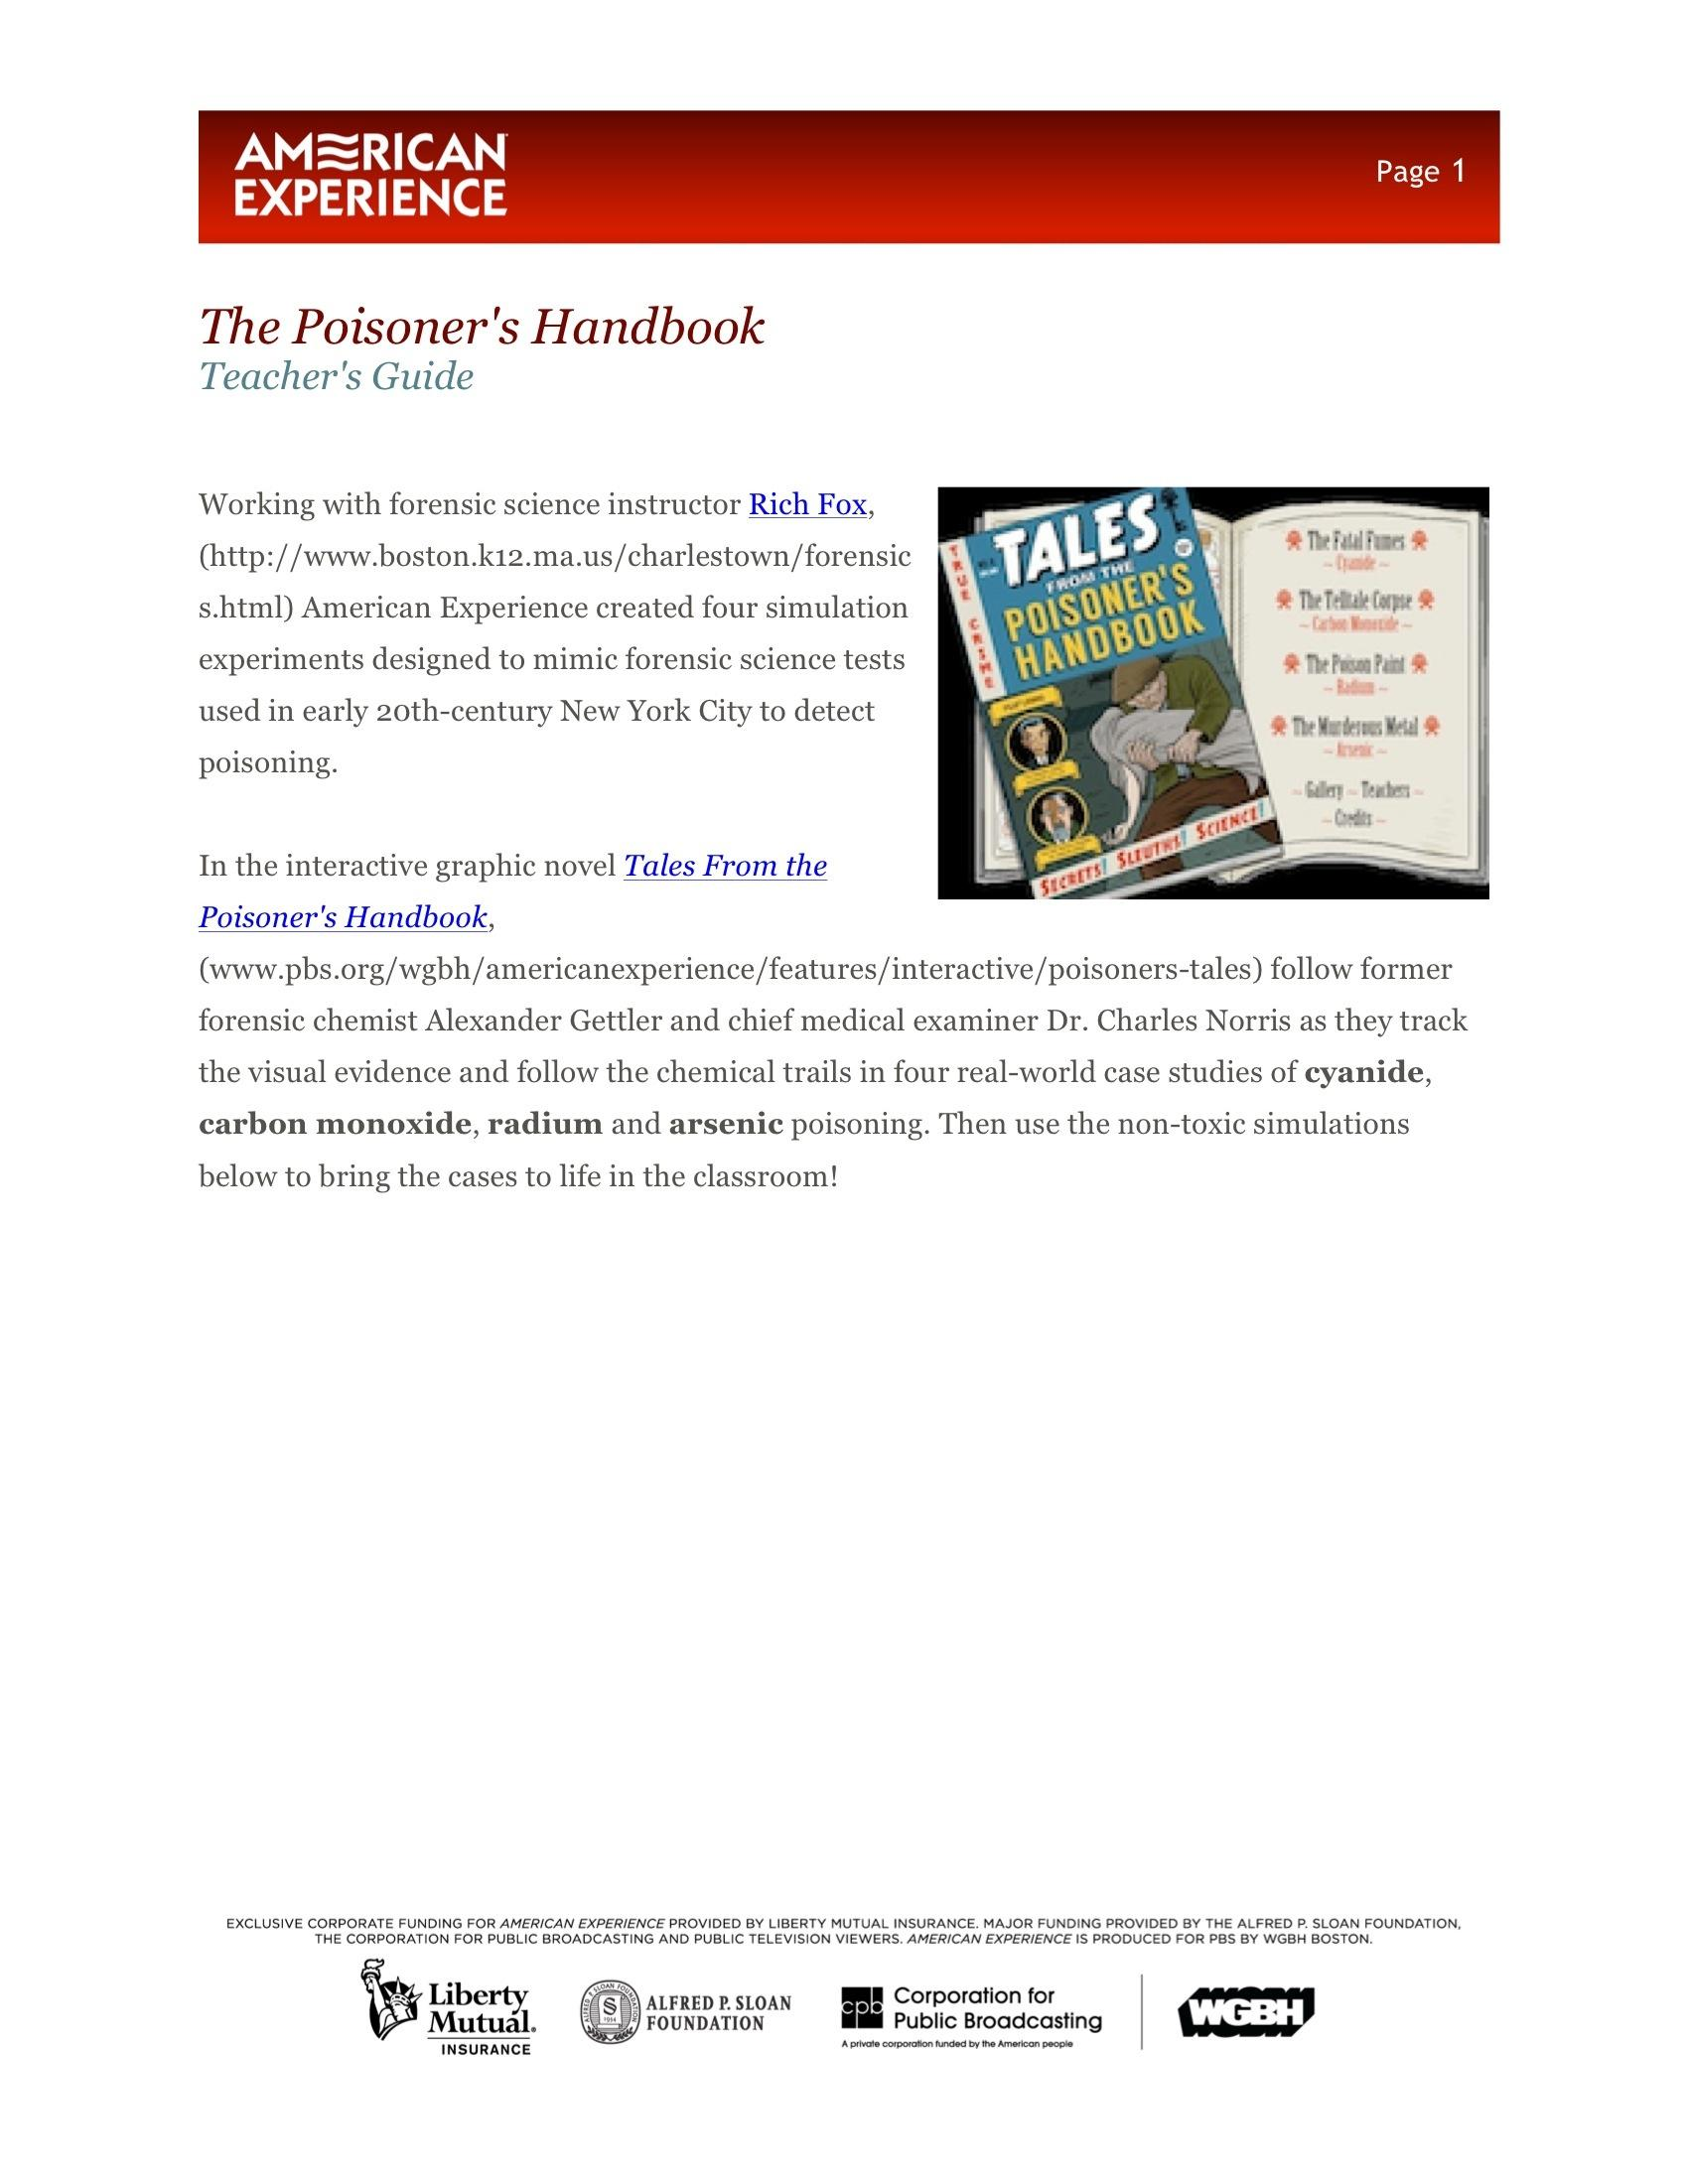 The Poisoner's Handbook - Interactive: Tales from the